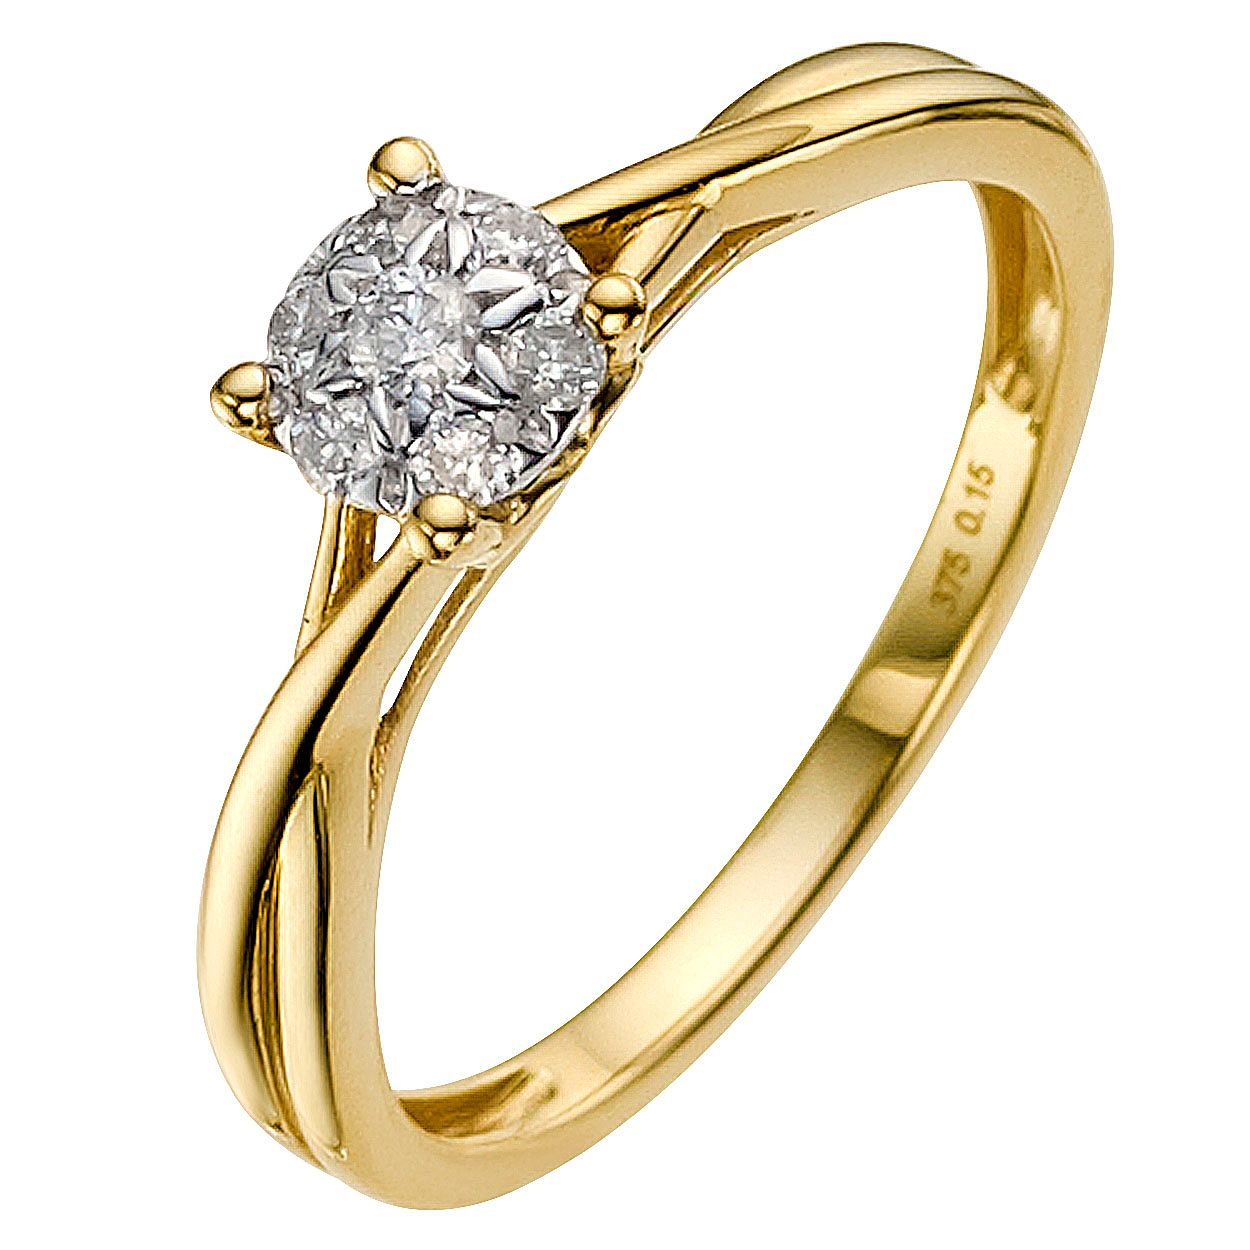 designers vert know ring now weddings best rated engagement new top stewart sethi rings to martha champagne